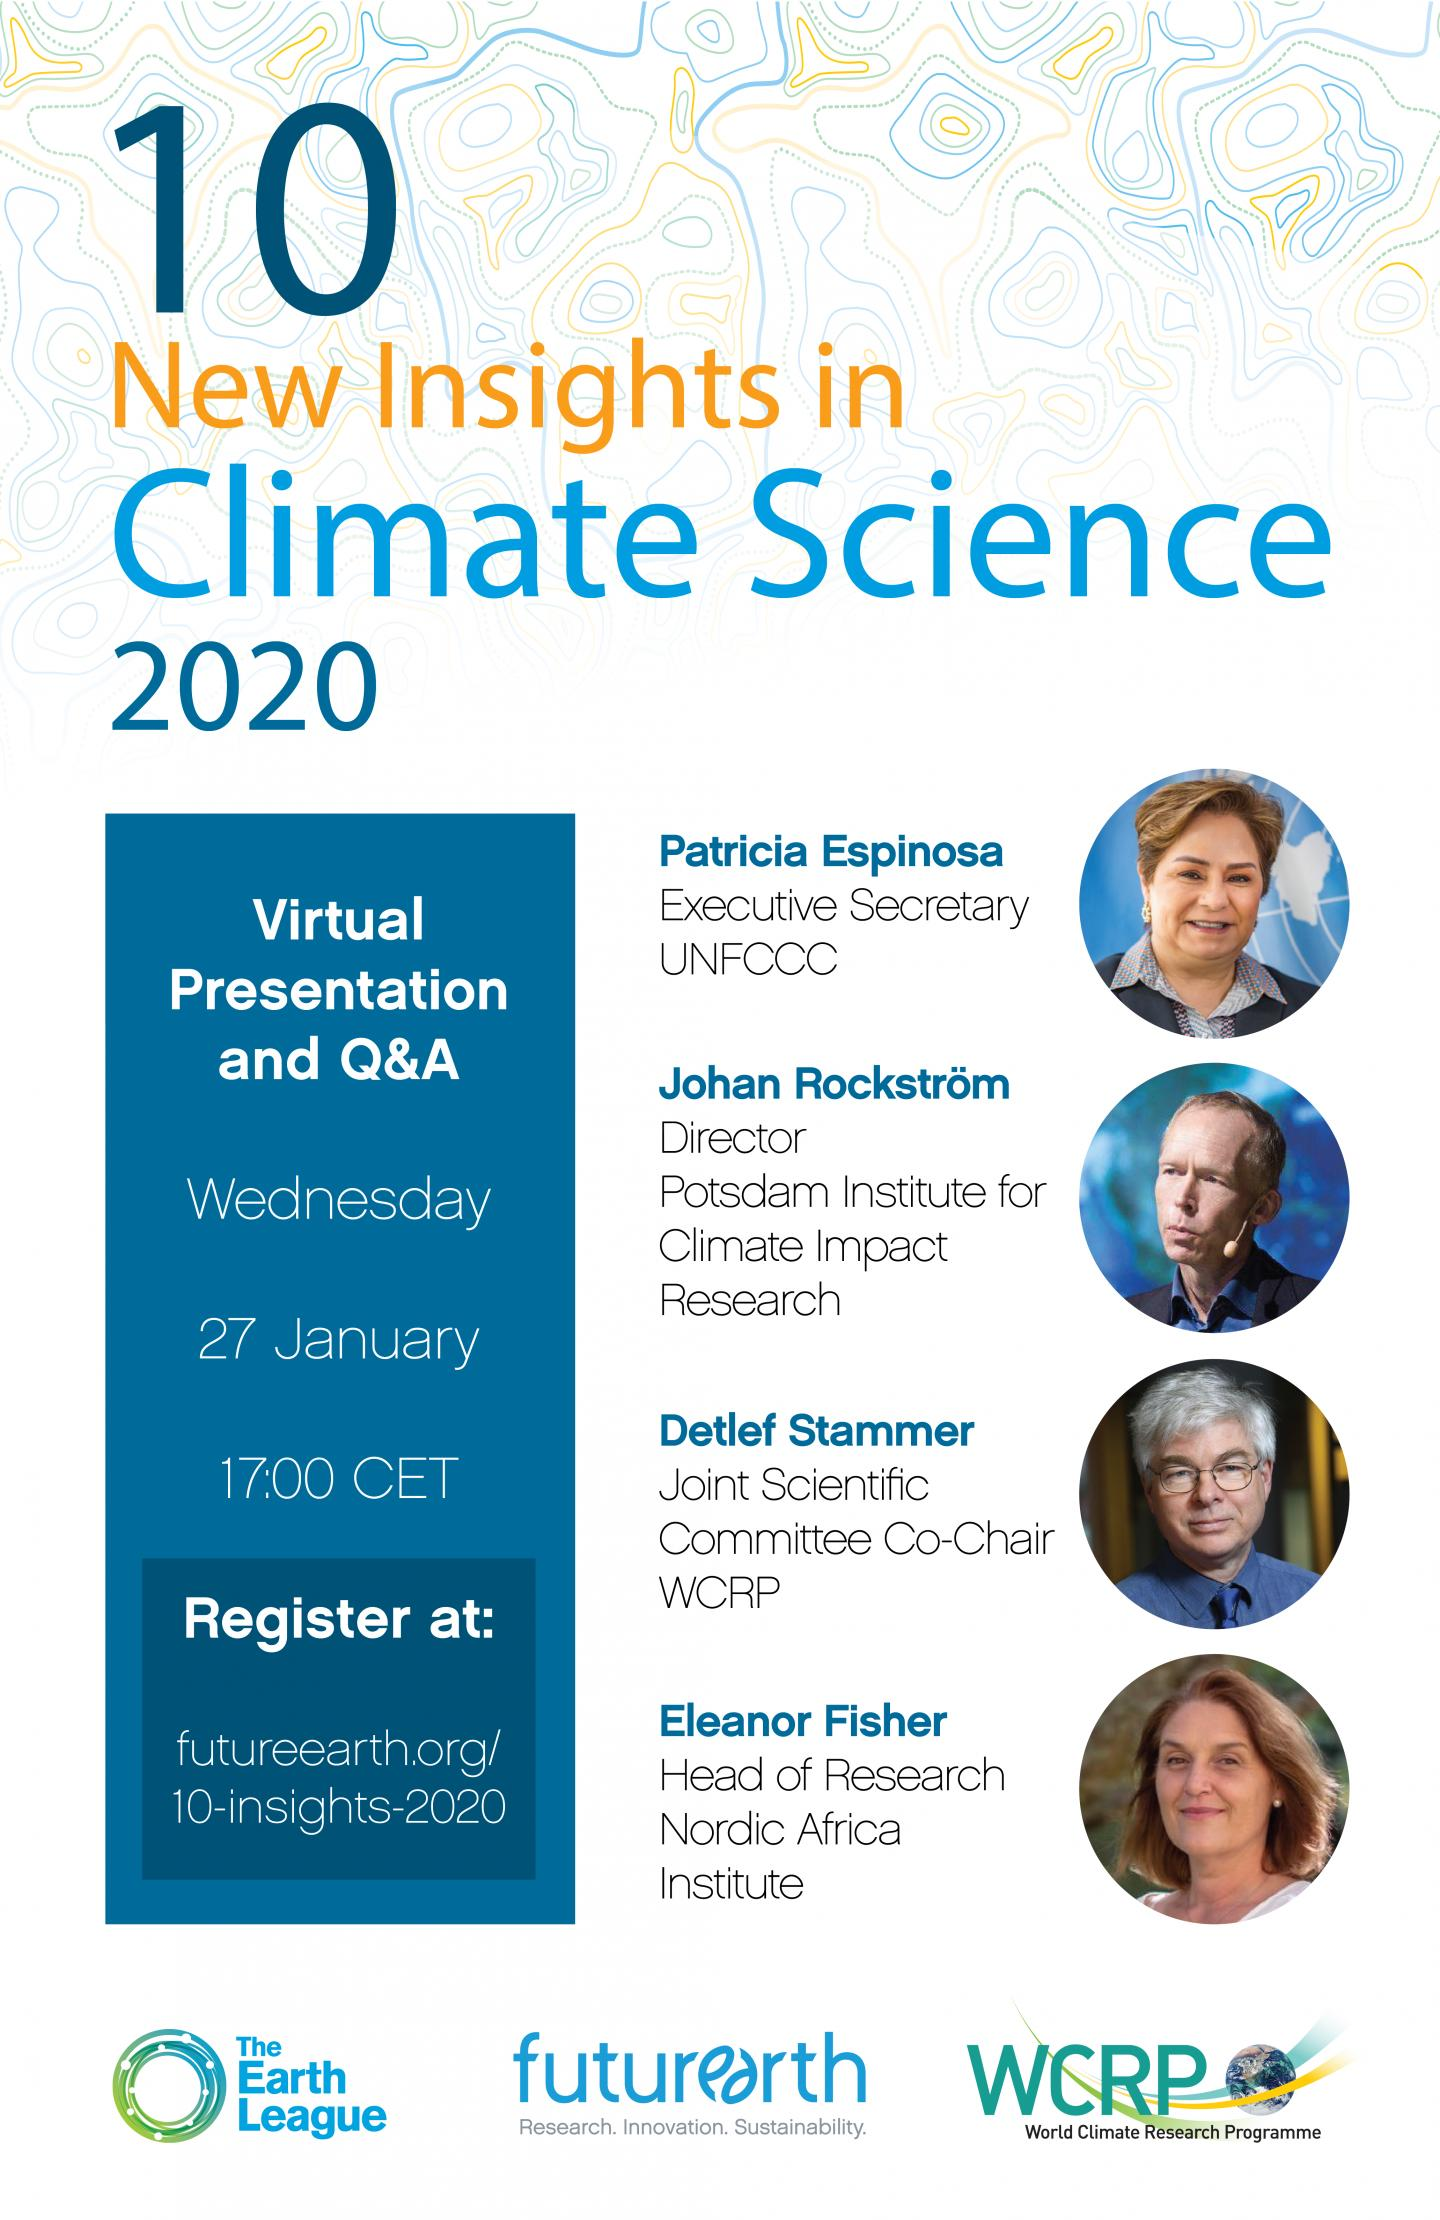 10 New Insights in Climate Science 2020 Launch Event